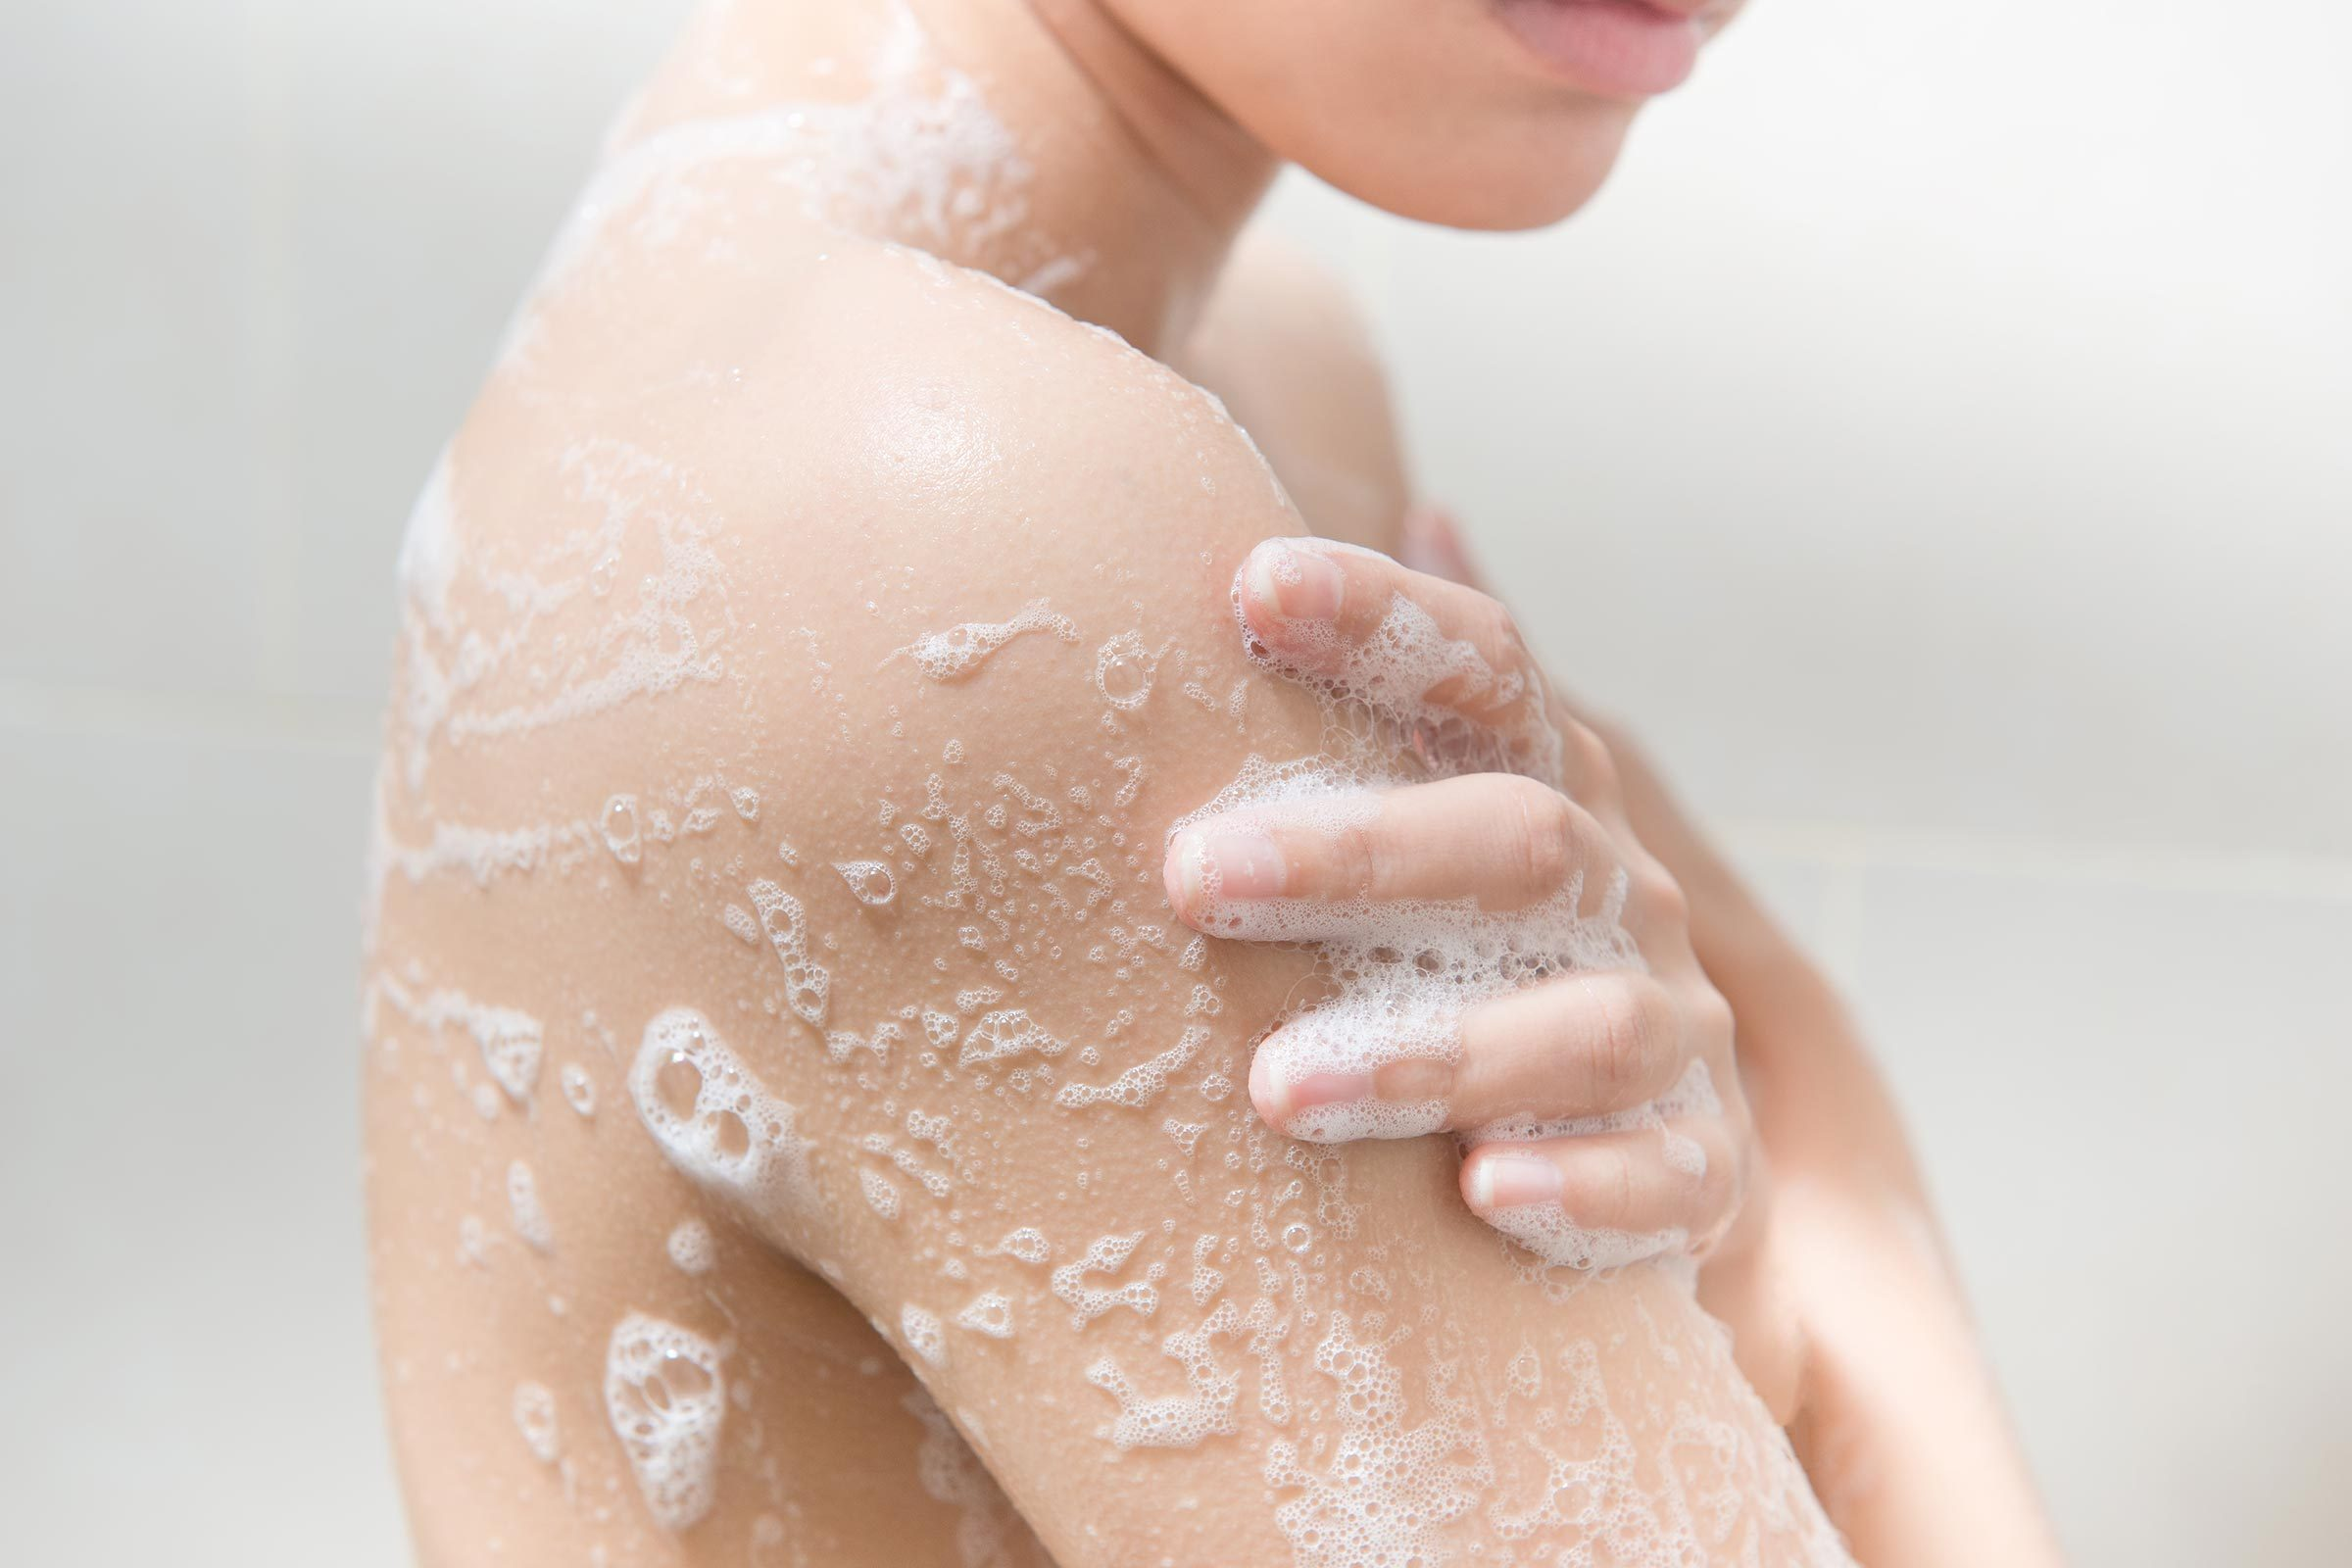 Woman showering and soaping up